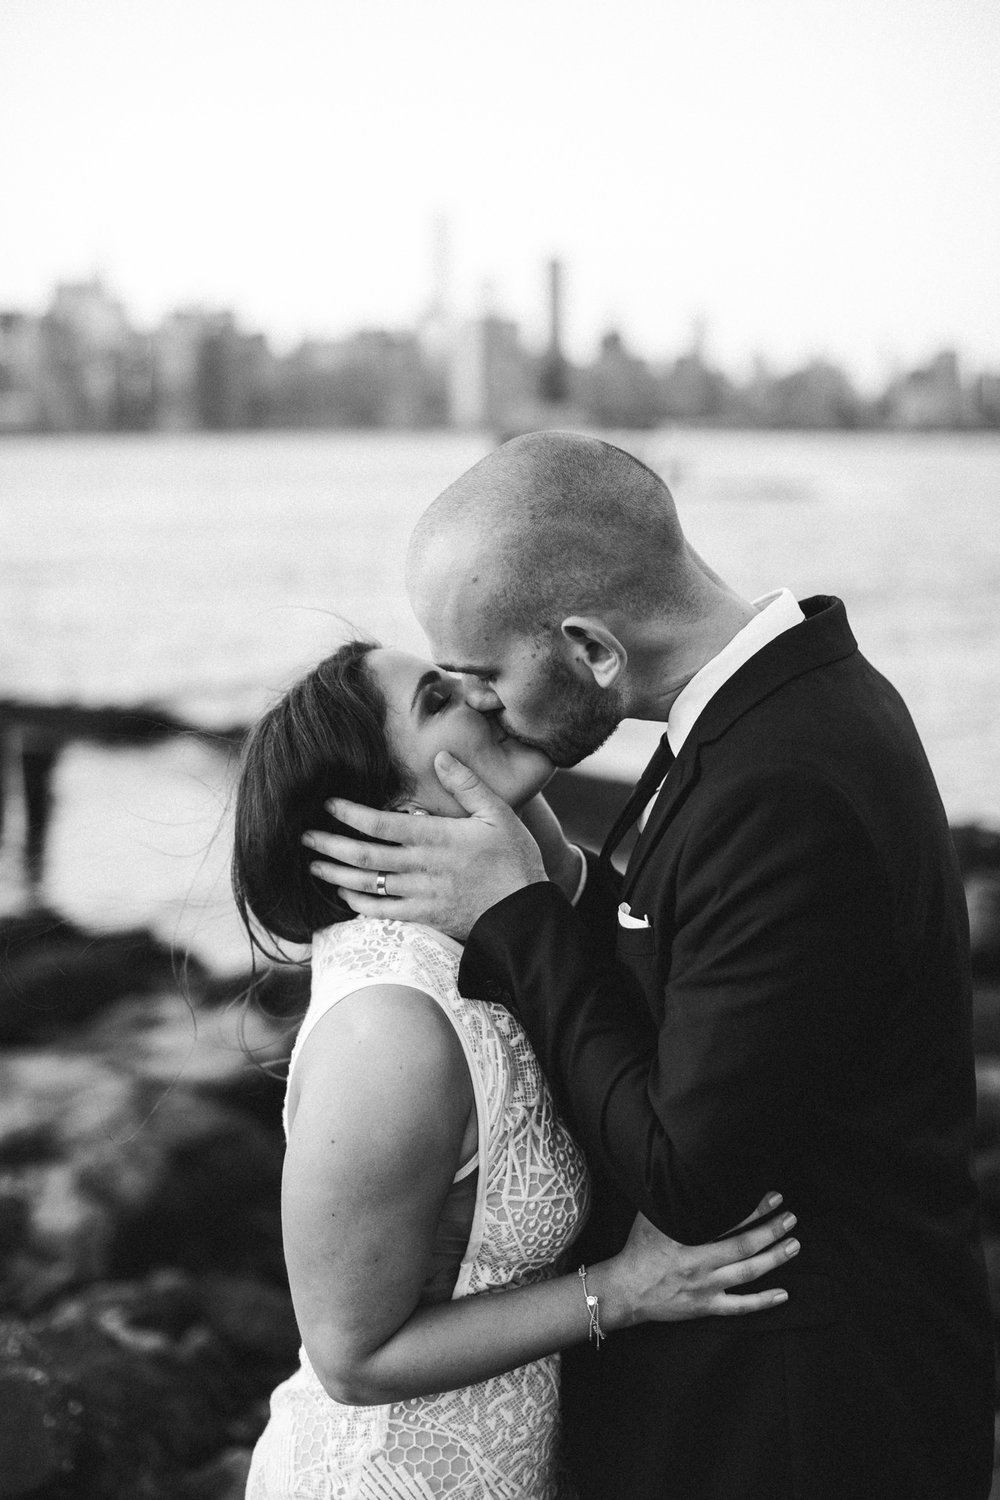 NYC_ELOPEMENT_CITYHALL_BROOKLYN_SAMMBLAKE_0055.jpg